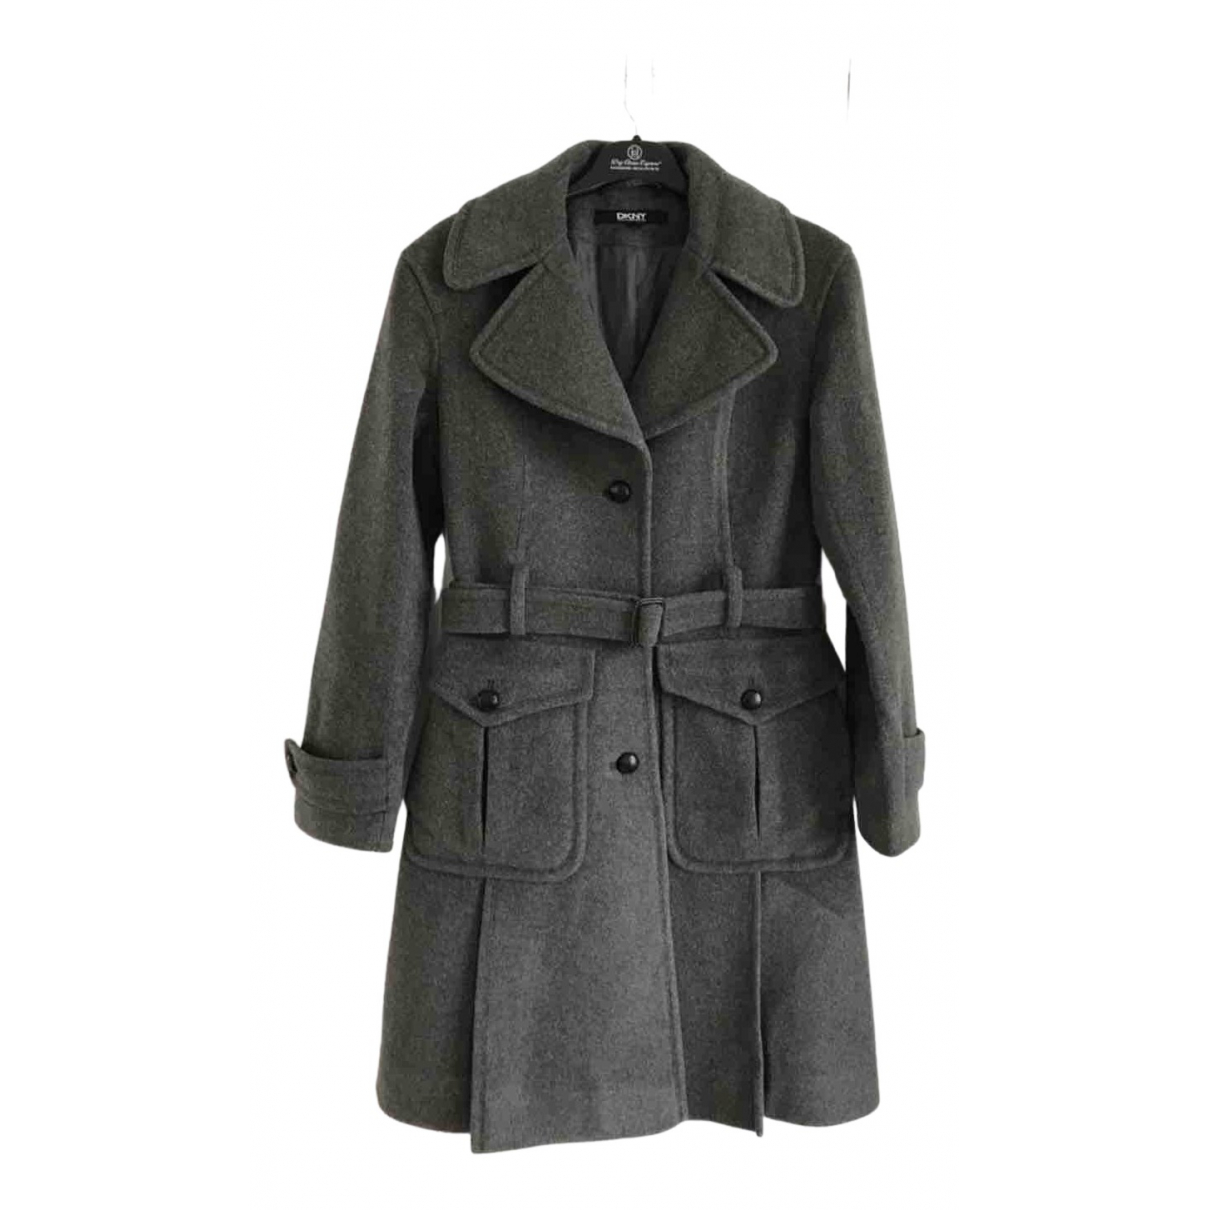 Dkny \N Grey Cashmere coat for Women 6 US